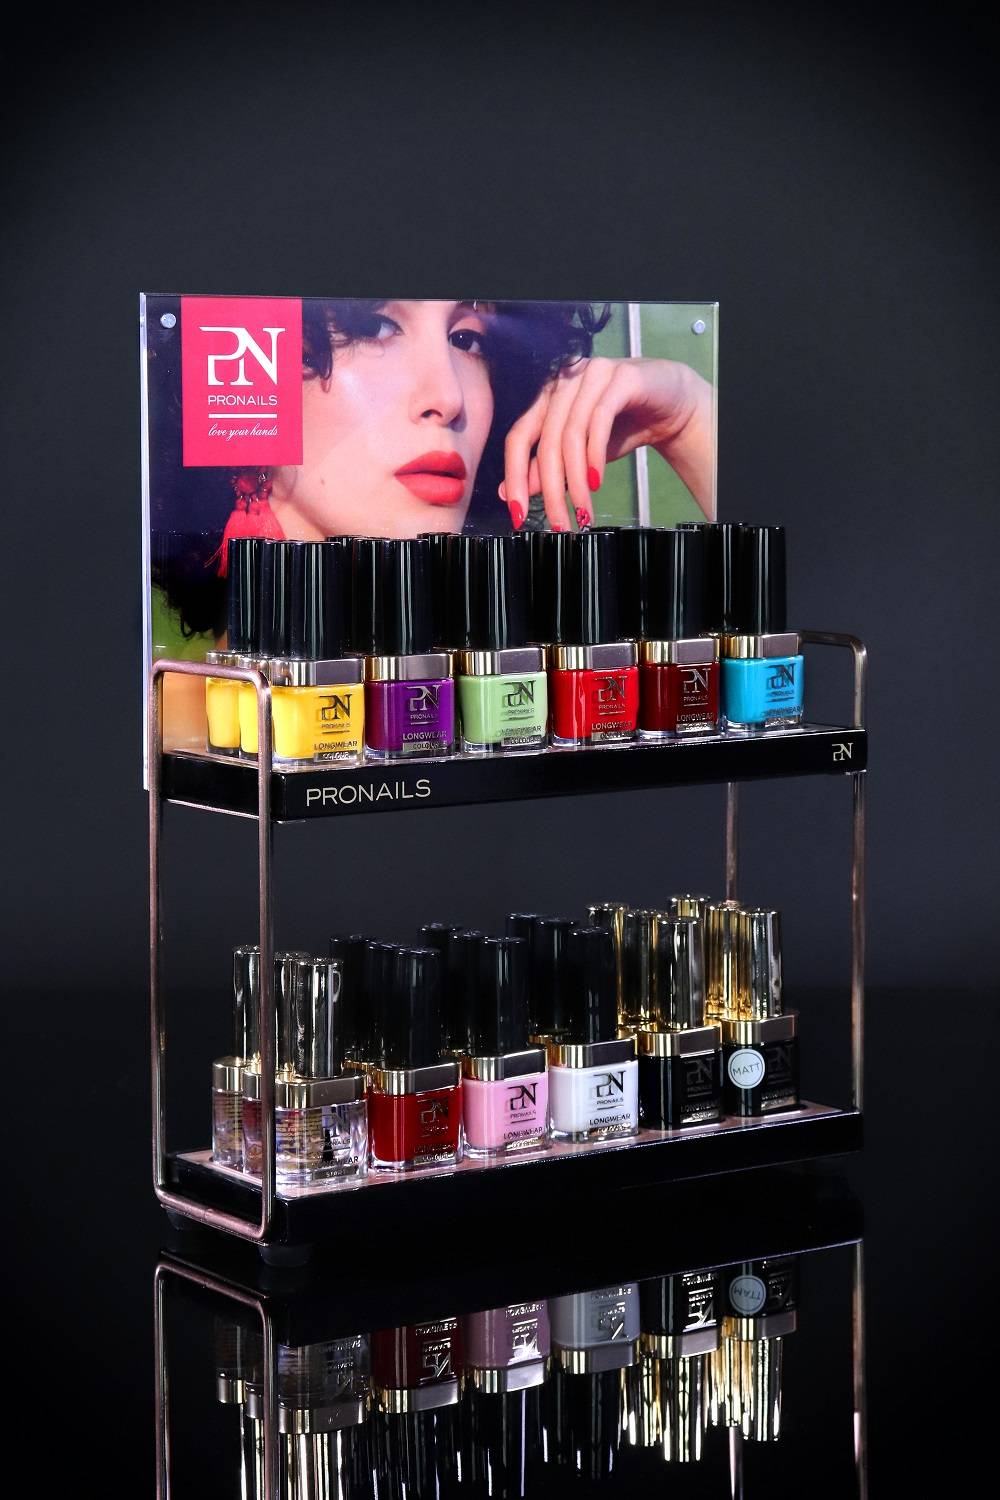 Pro Nails counter display